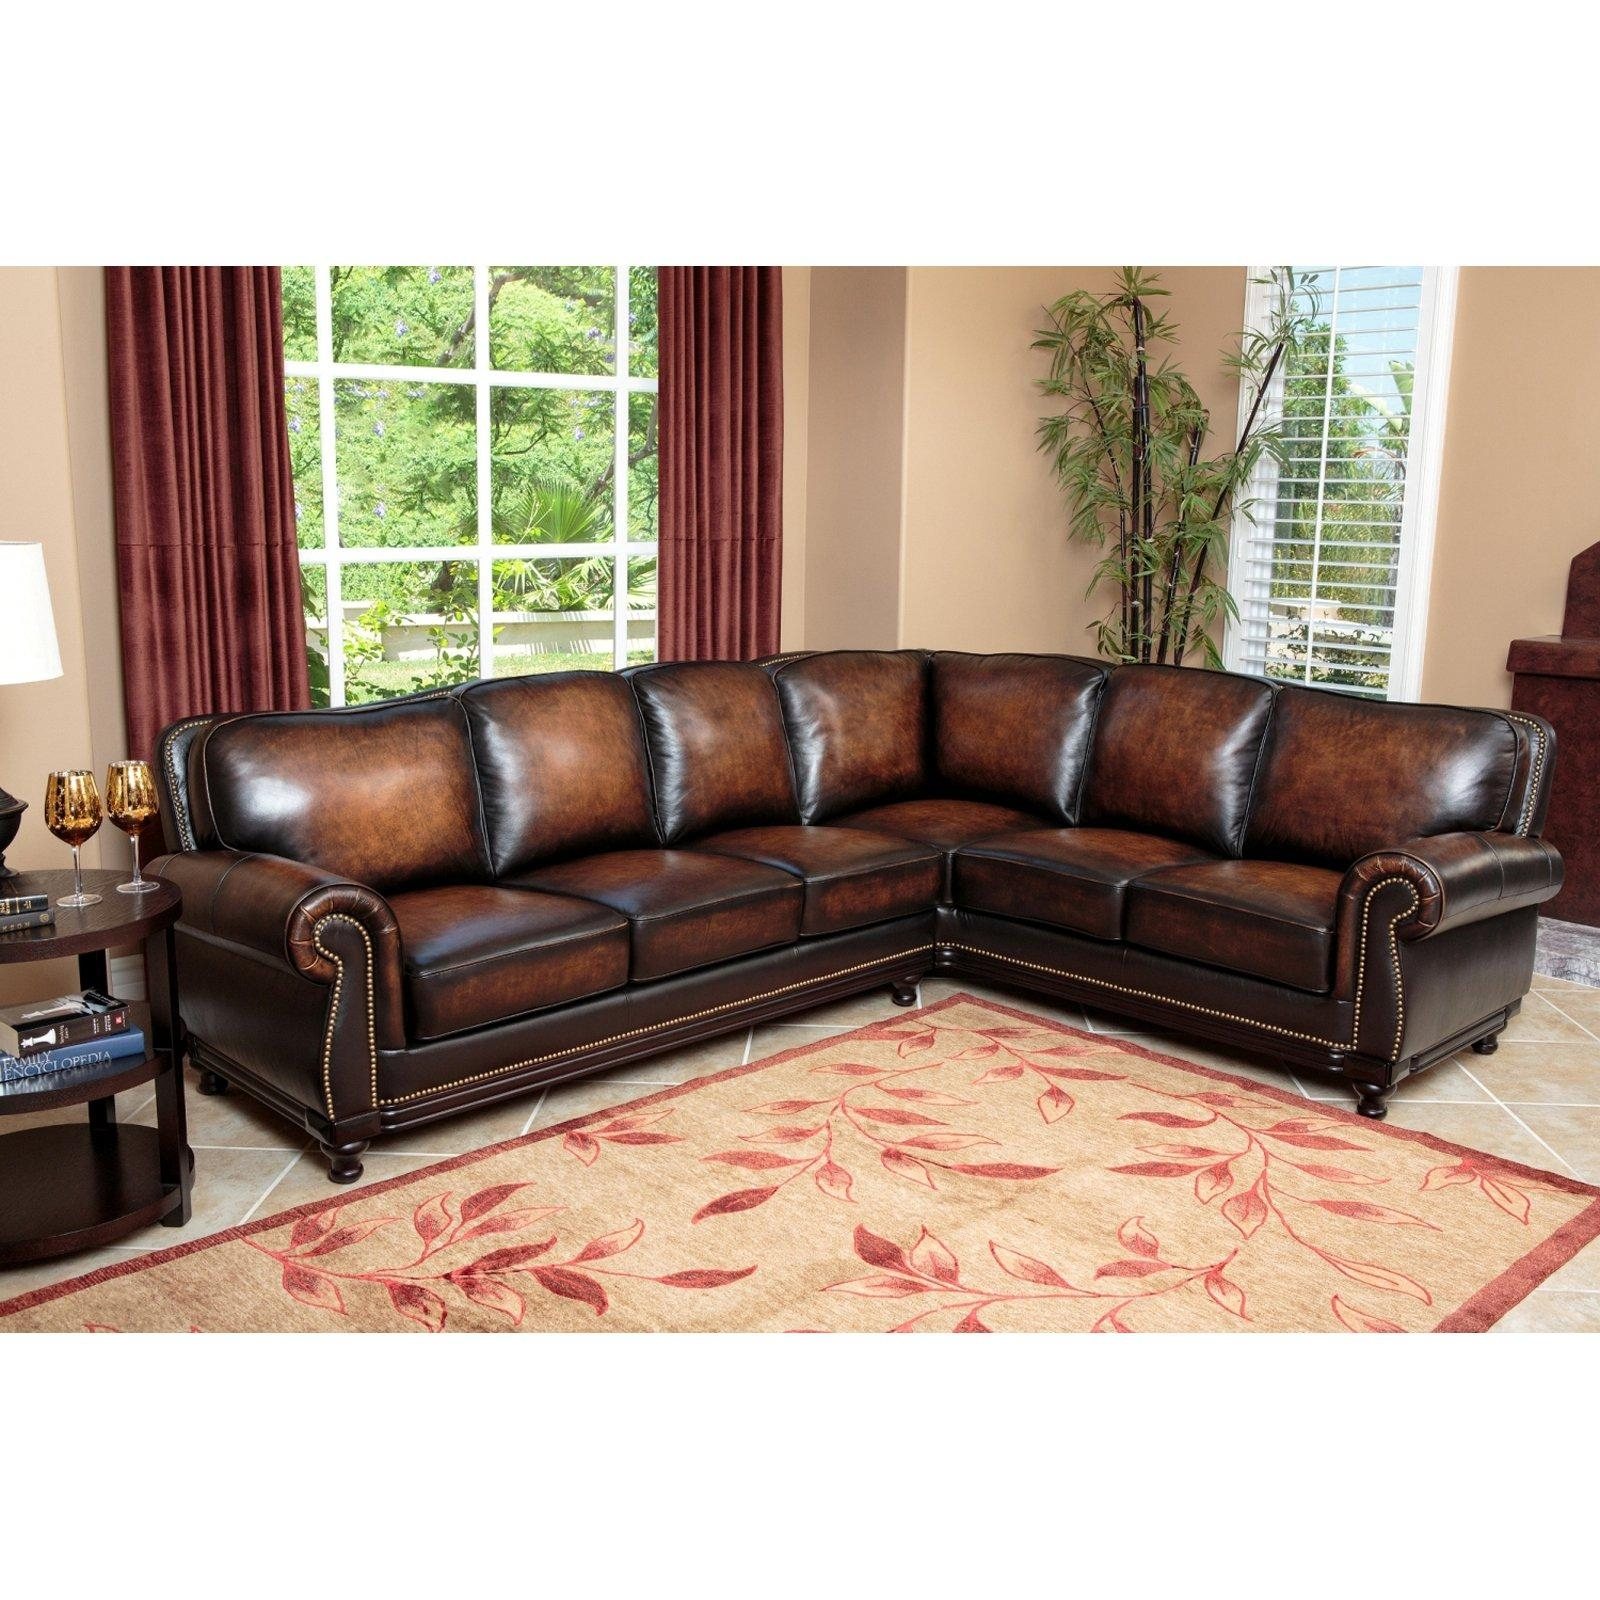 Abbyson Tekana Premium Italian Leather Sectional Sofa – Dark Brown With Regard To Abbyson Living Sectional (Image 9 of 15)